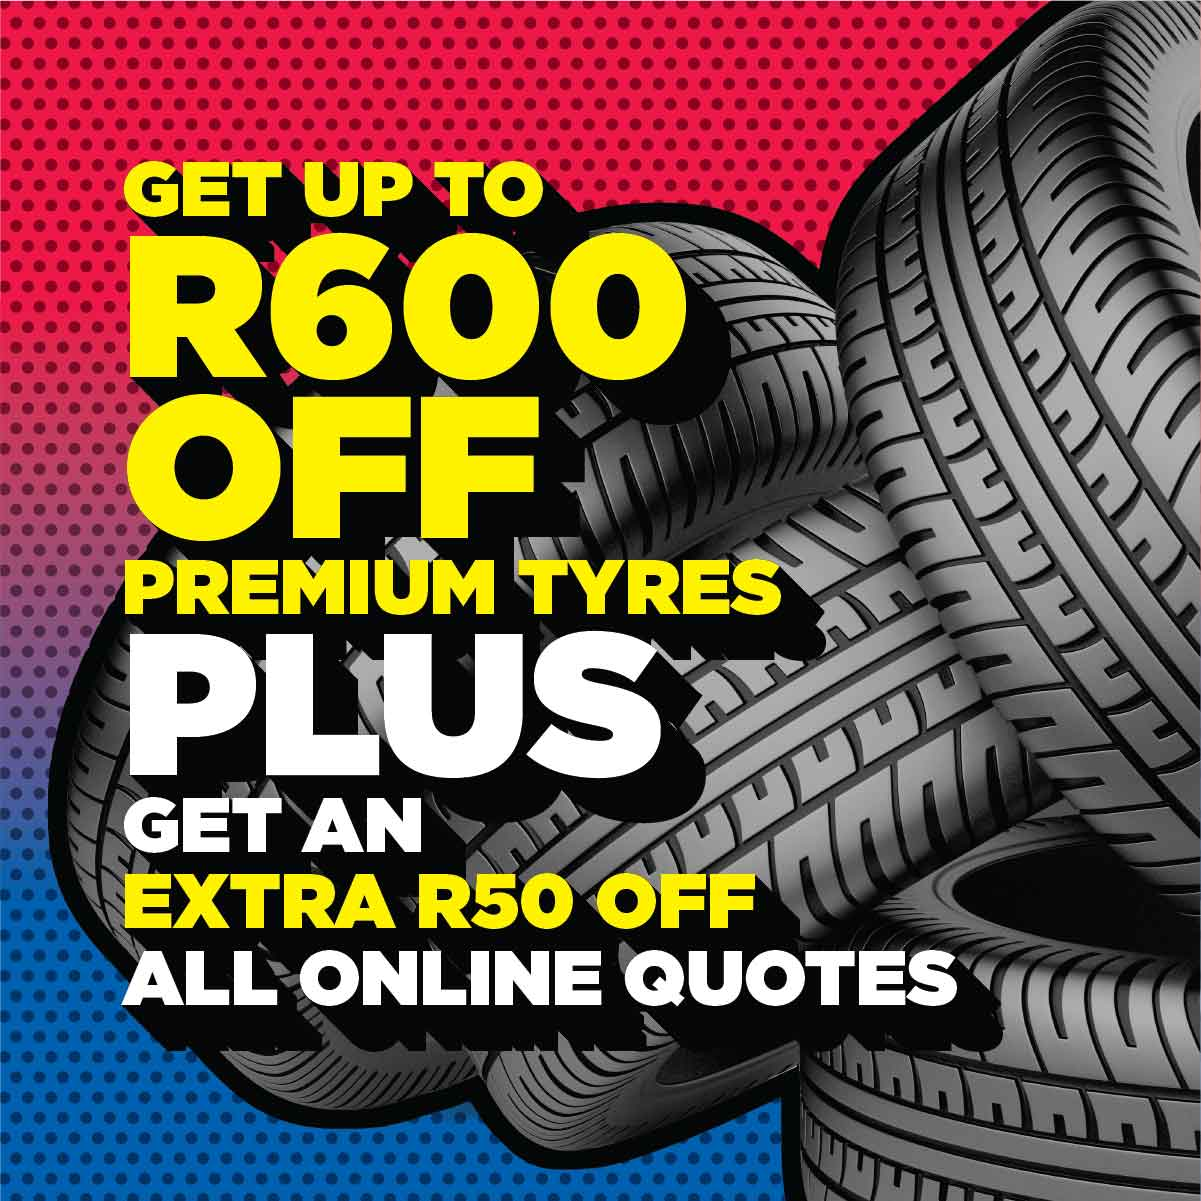 R50 off online quotes